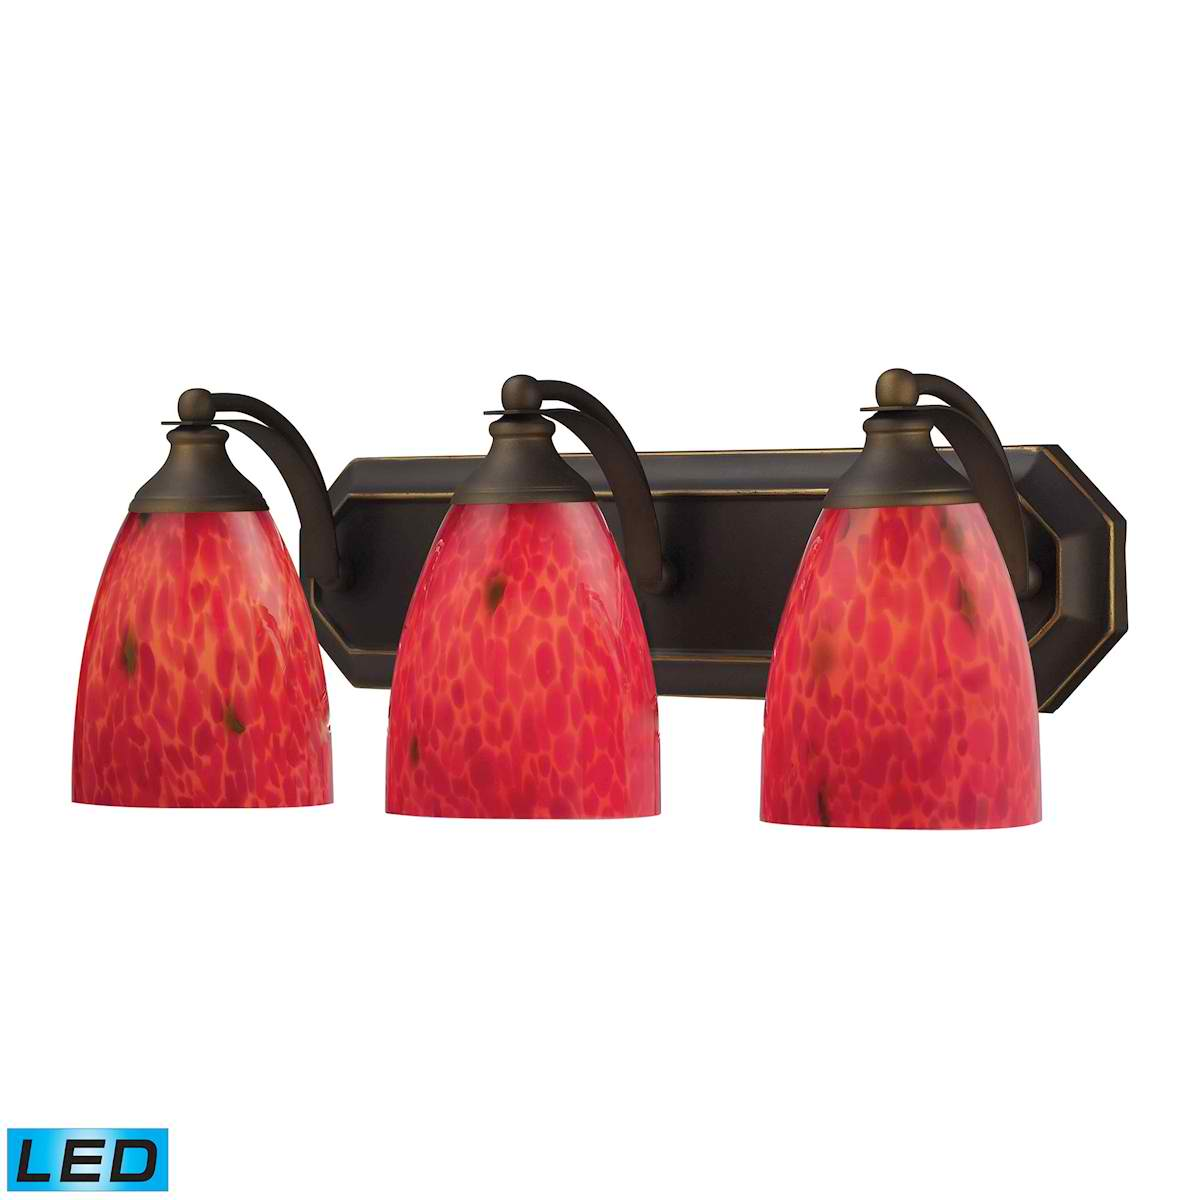 3 Light Vanity in Aged Bronze and Fire Red Glass - LED, 800 Lumens (2400 Lumens Total) with Full Scale